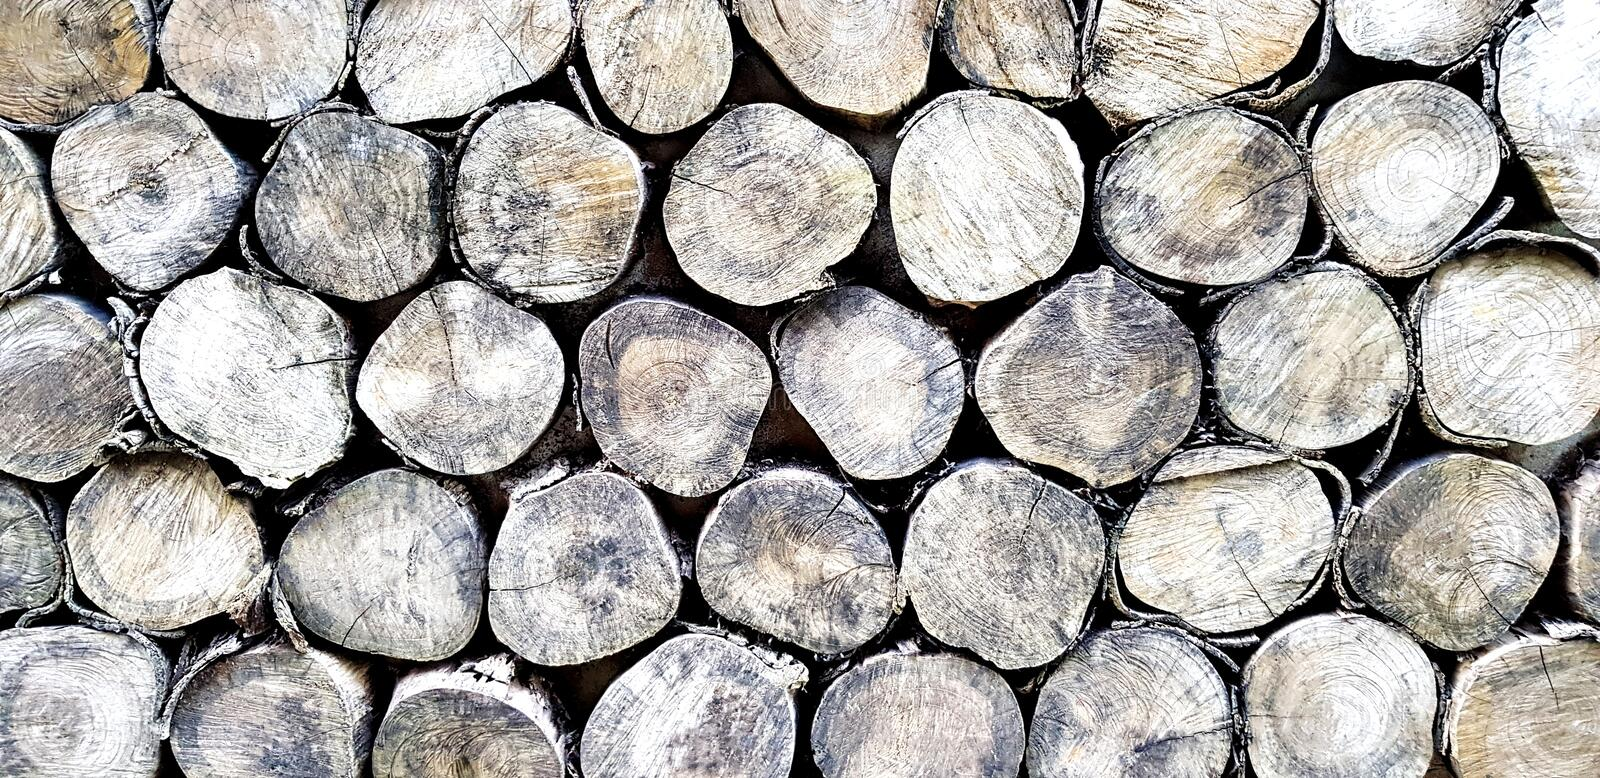 Old wood pile of natural for background. Art of timber wallpaper, Nature material, Abstract and Round shape concept royalty free stock images